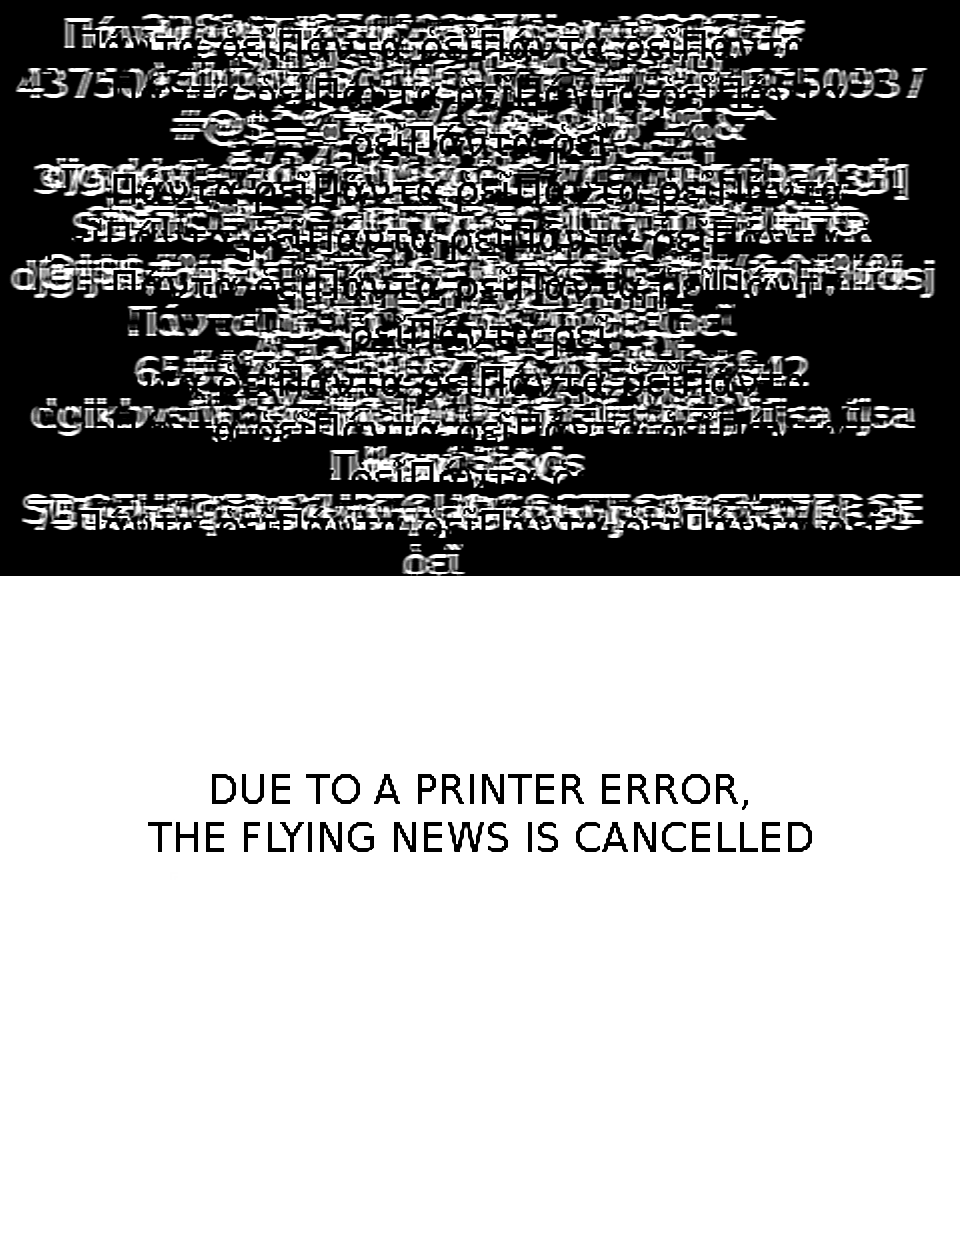 Due To A Printer Error, The Flying News Has Been Cancelled